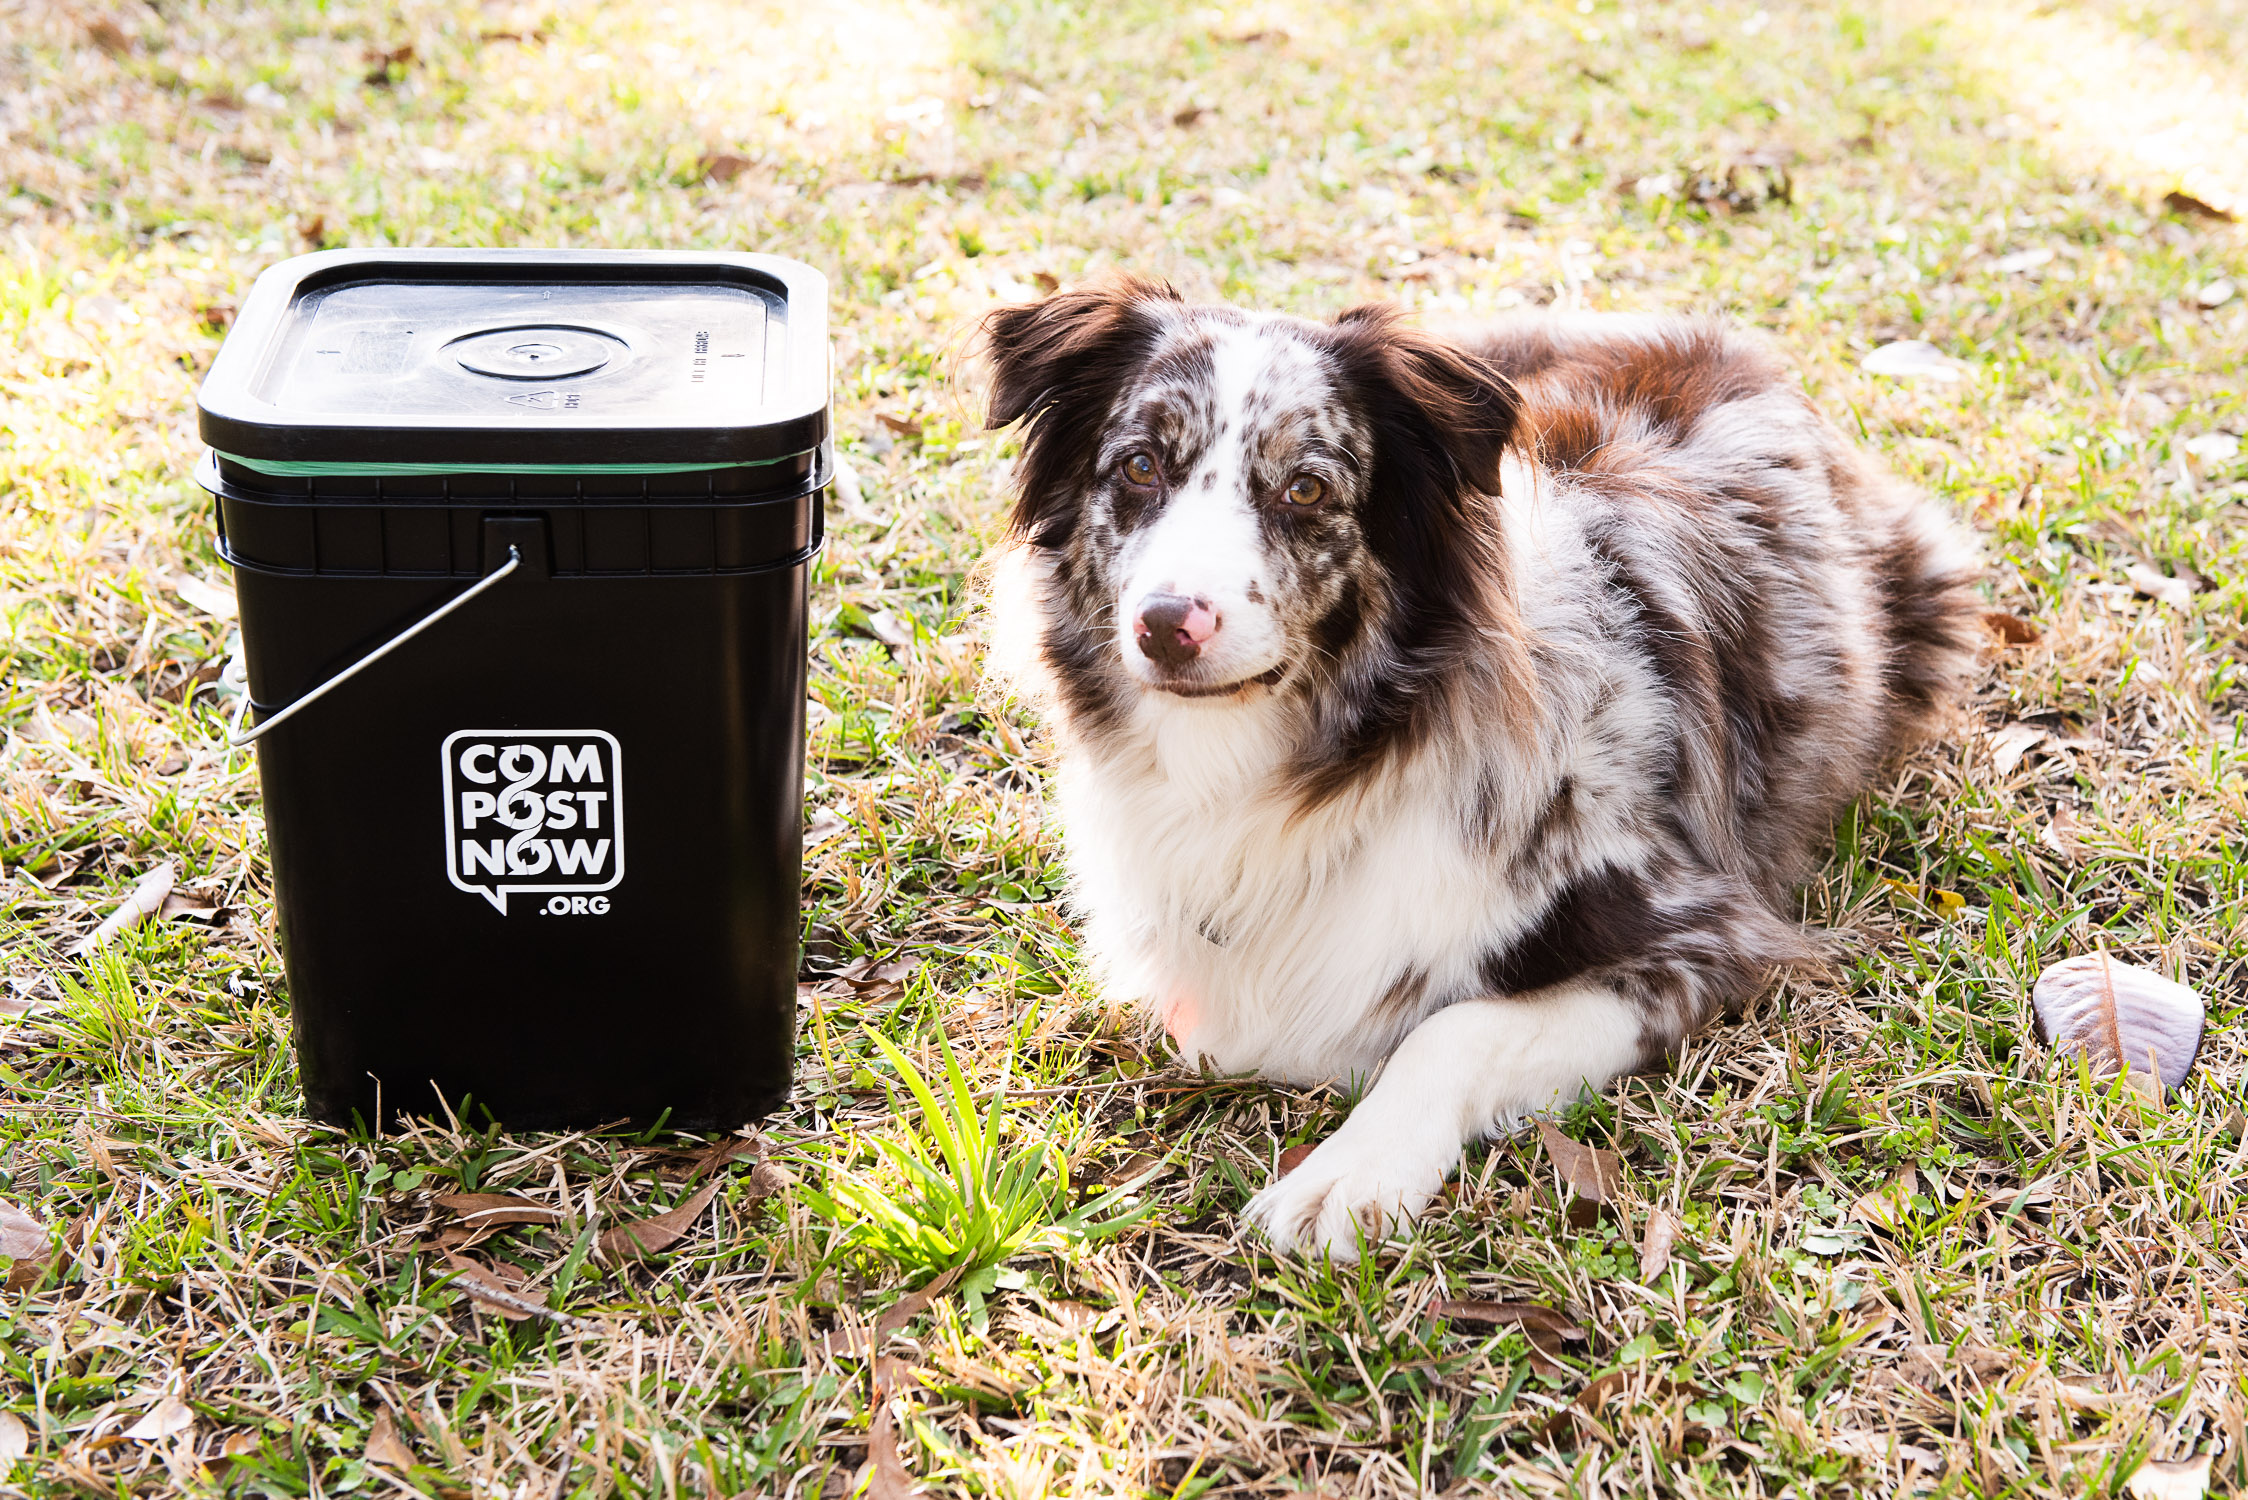 11 Reasons I'm Keeping CompostNow Even Though I Have A Compost System